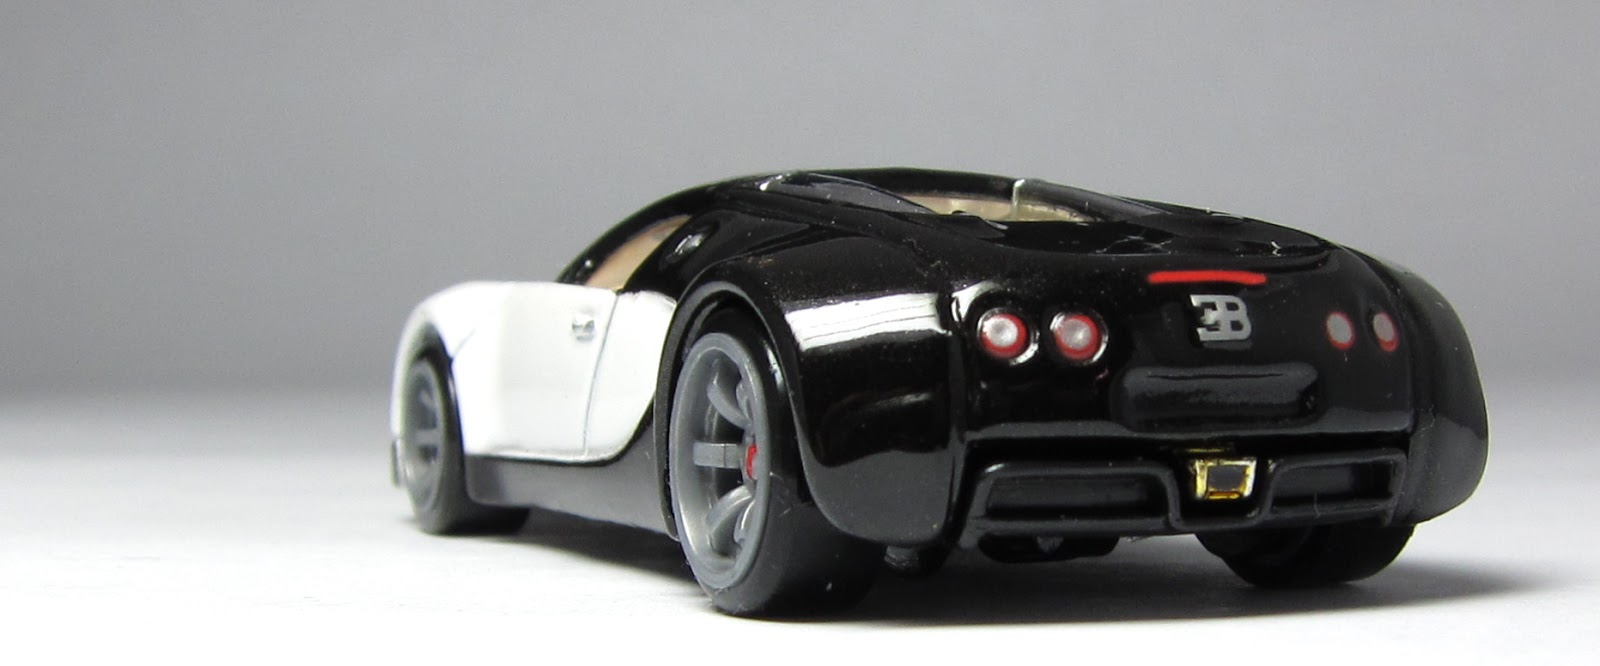 bugatti veyron toy car hot wheels giuseppe repetto toys car my die cast life hotwheels bugatti. Black Bedroom Furniture Sets. Home Design Ideas